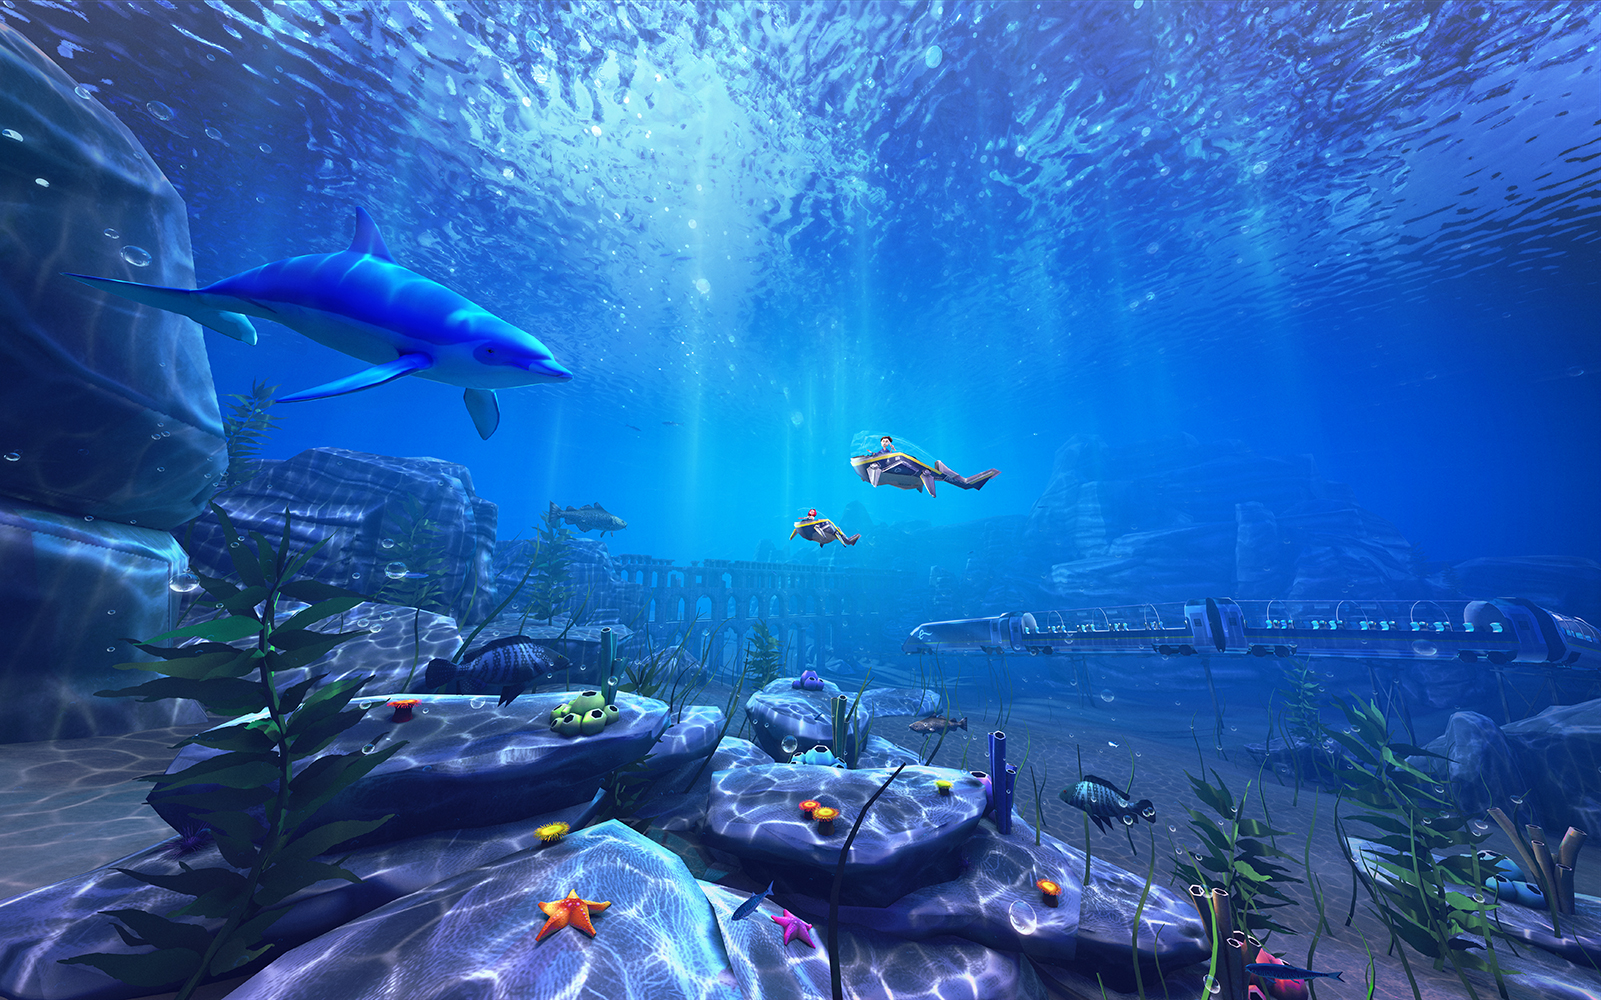 New AKQA VR experience reveals the hidden underwater seascapes of Eurostar journeys